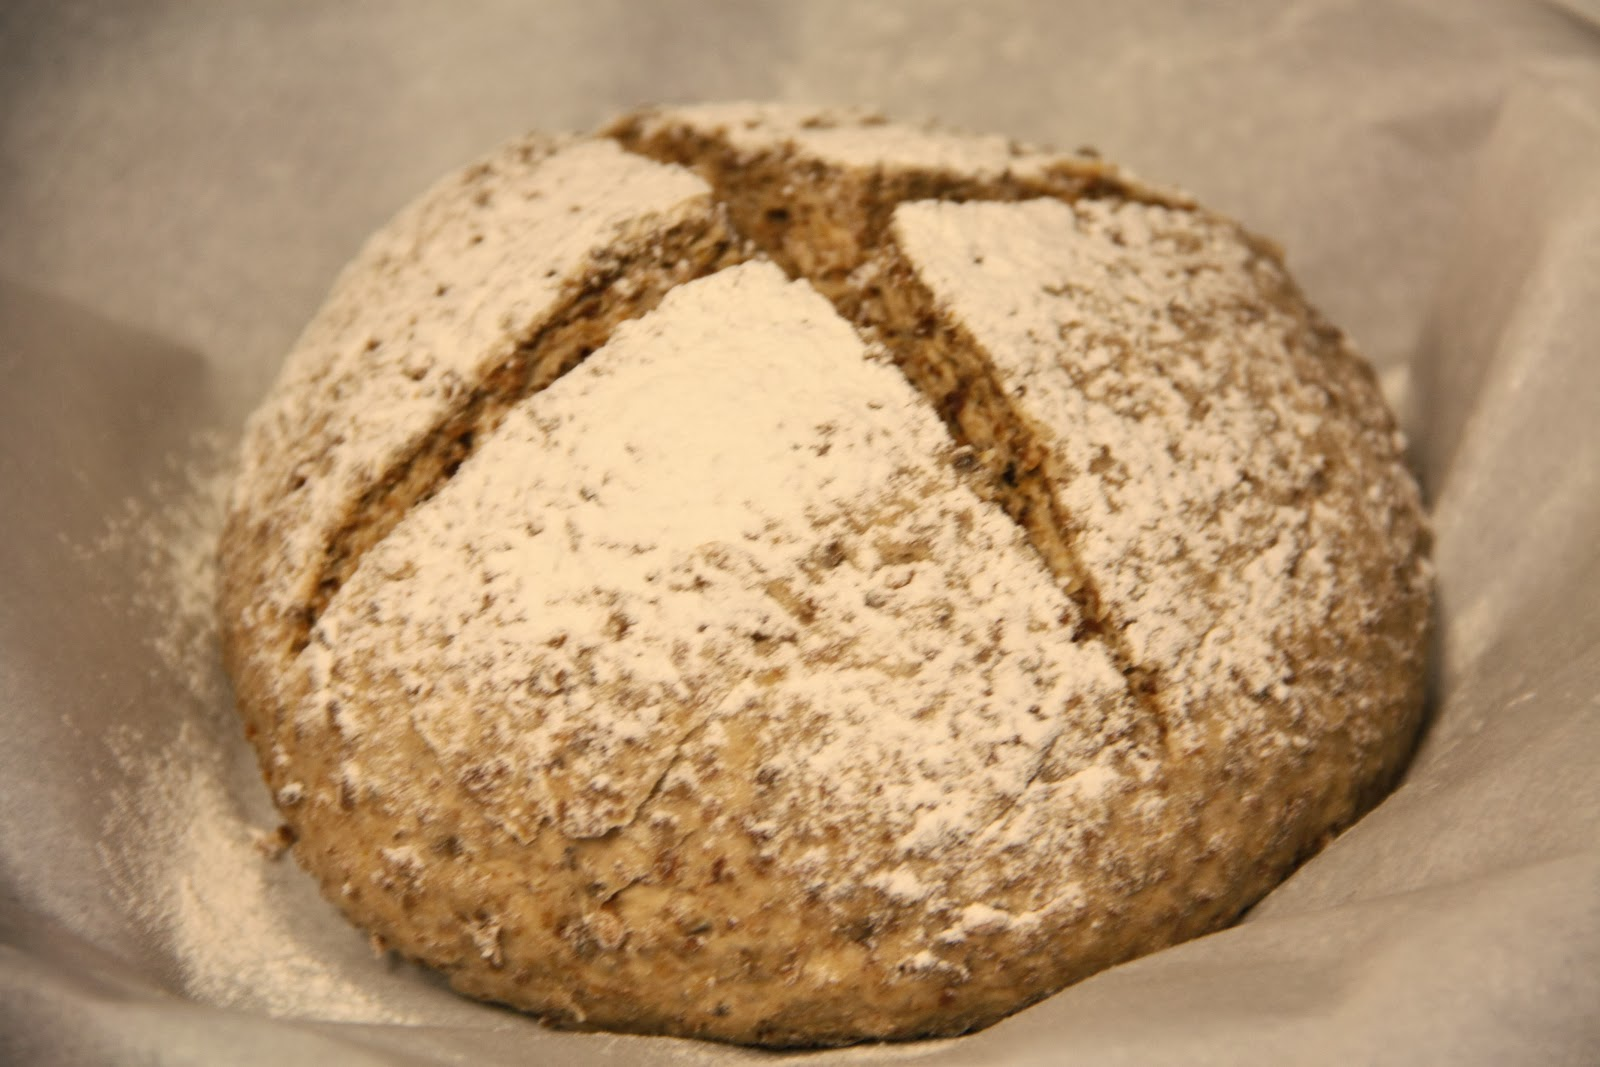 With A Little Honey It Makes For A Dense Whole Wheat Loaf No Knead Bread